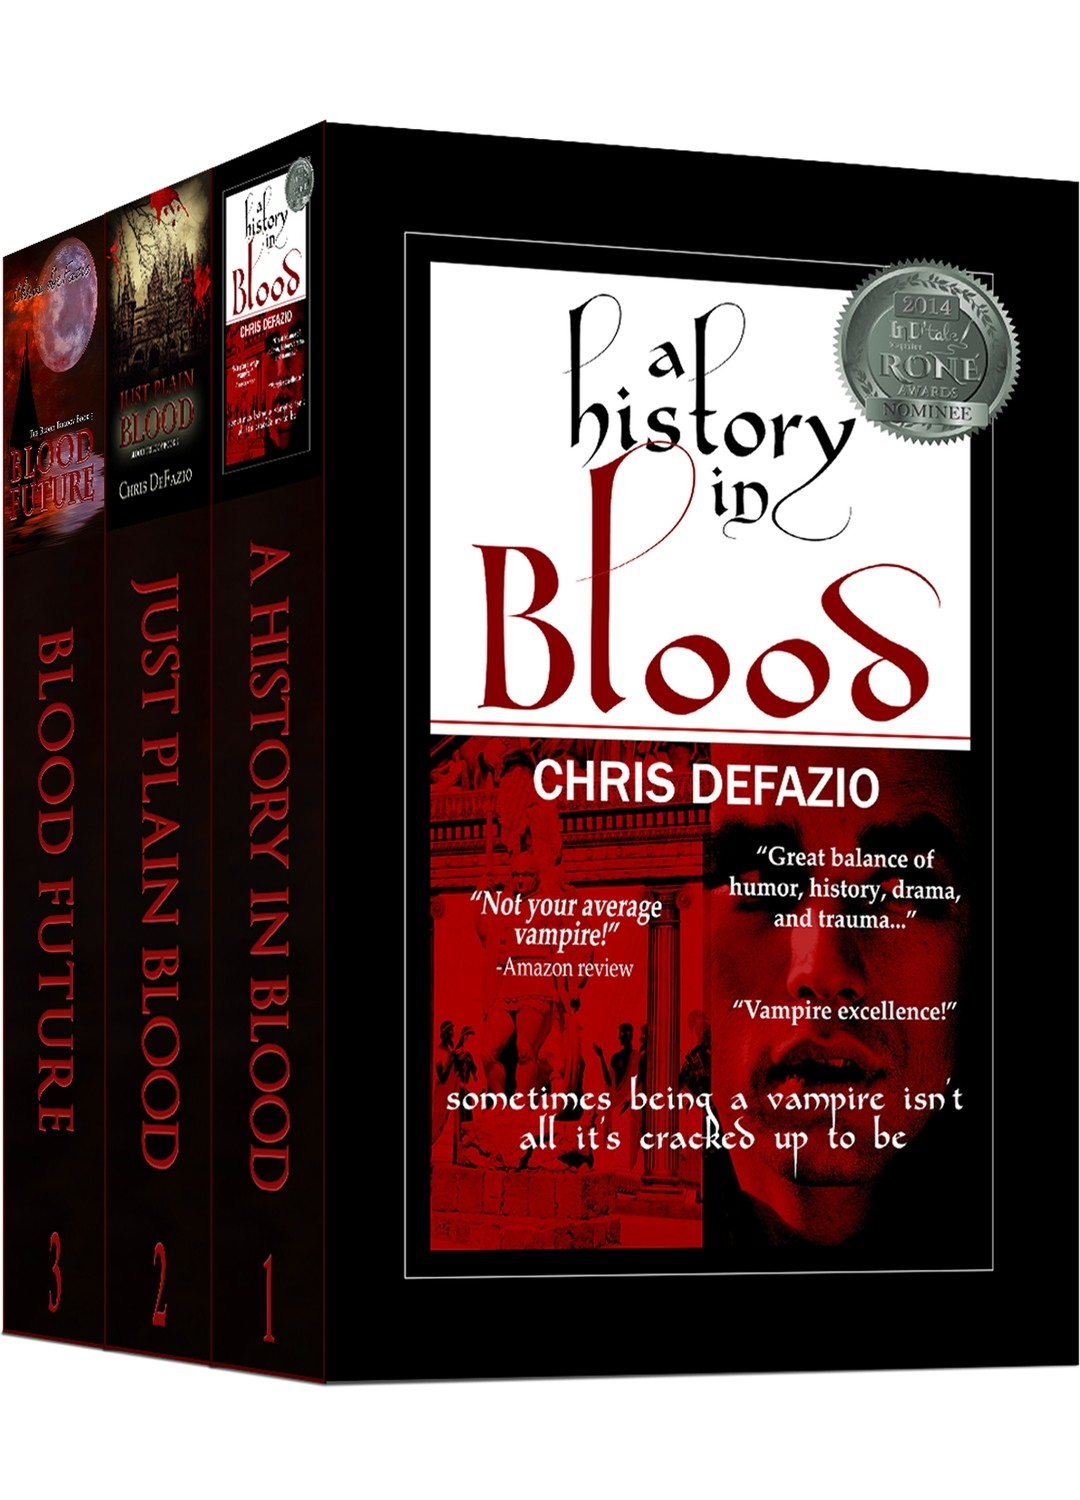 The Blood Trilogy (Books 1-3) - Paperback Set